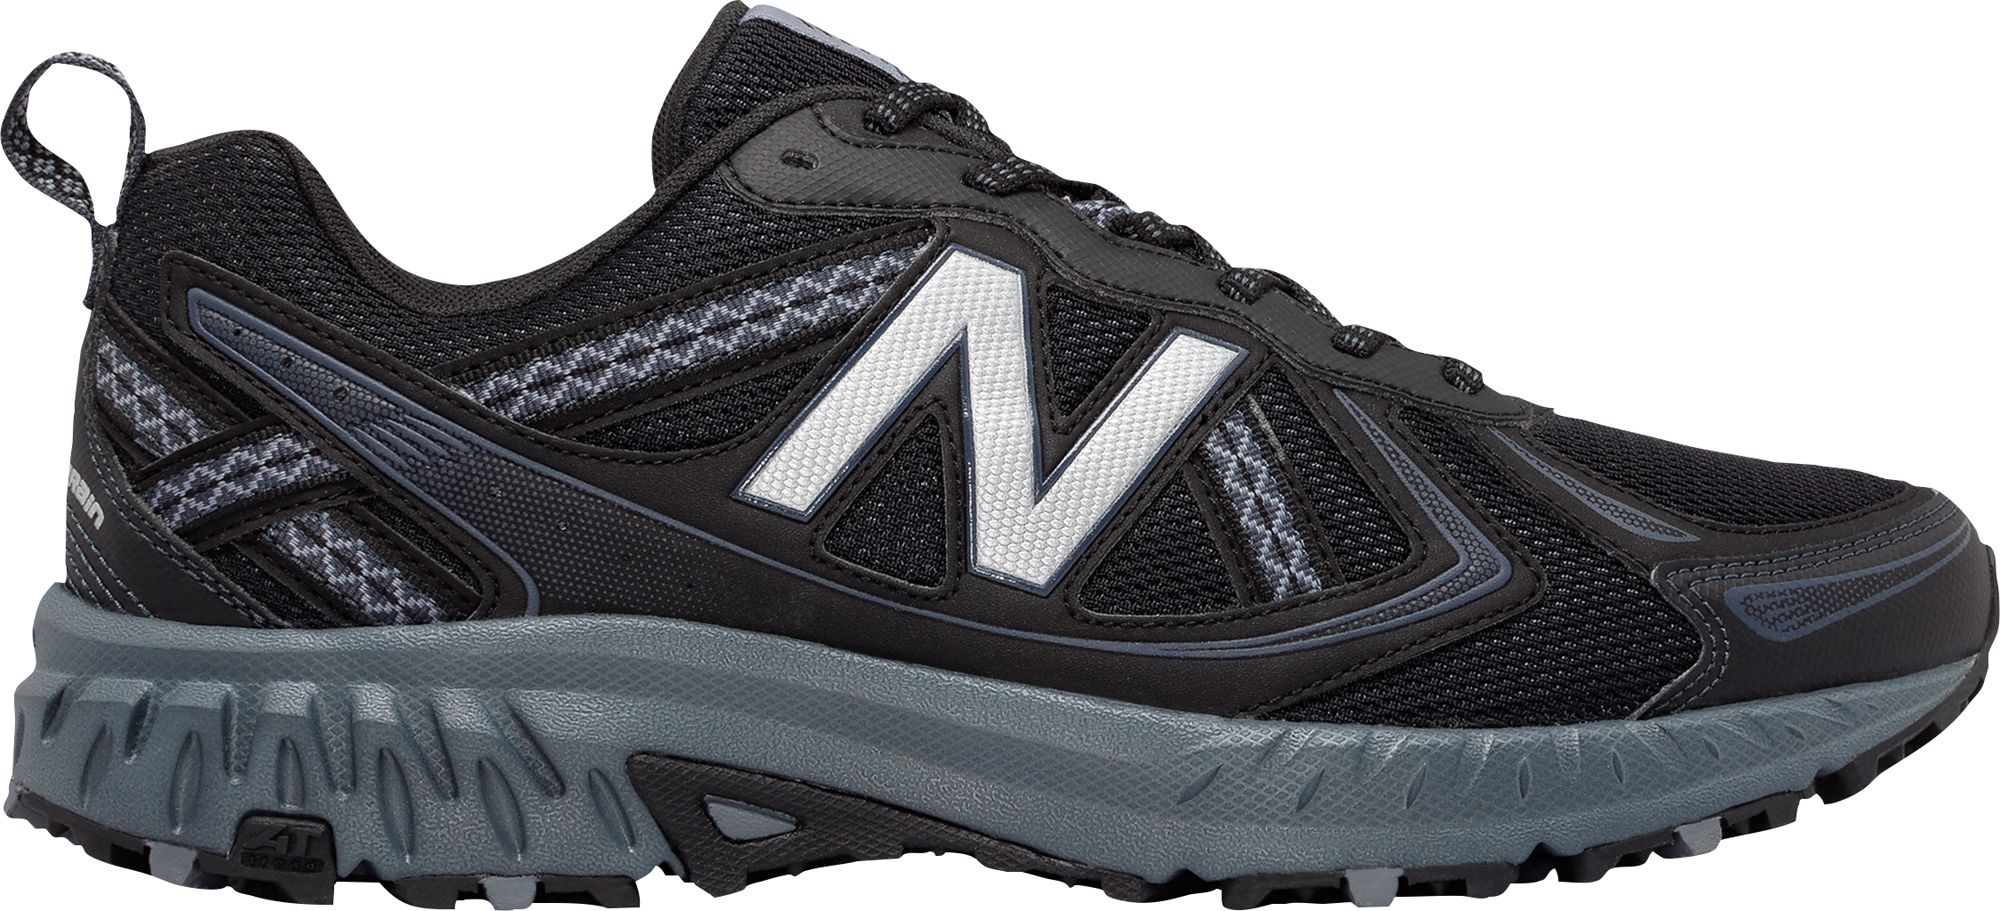 black new balance shoes 410 ammo ballistics and trajectory